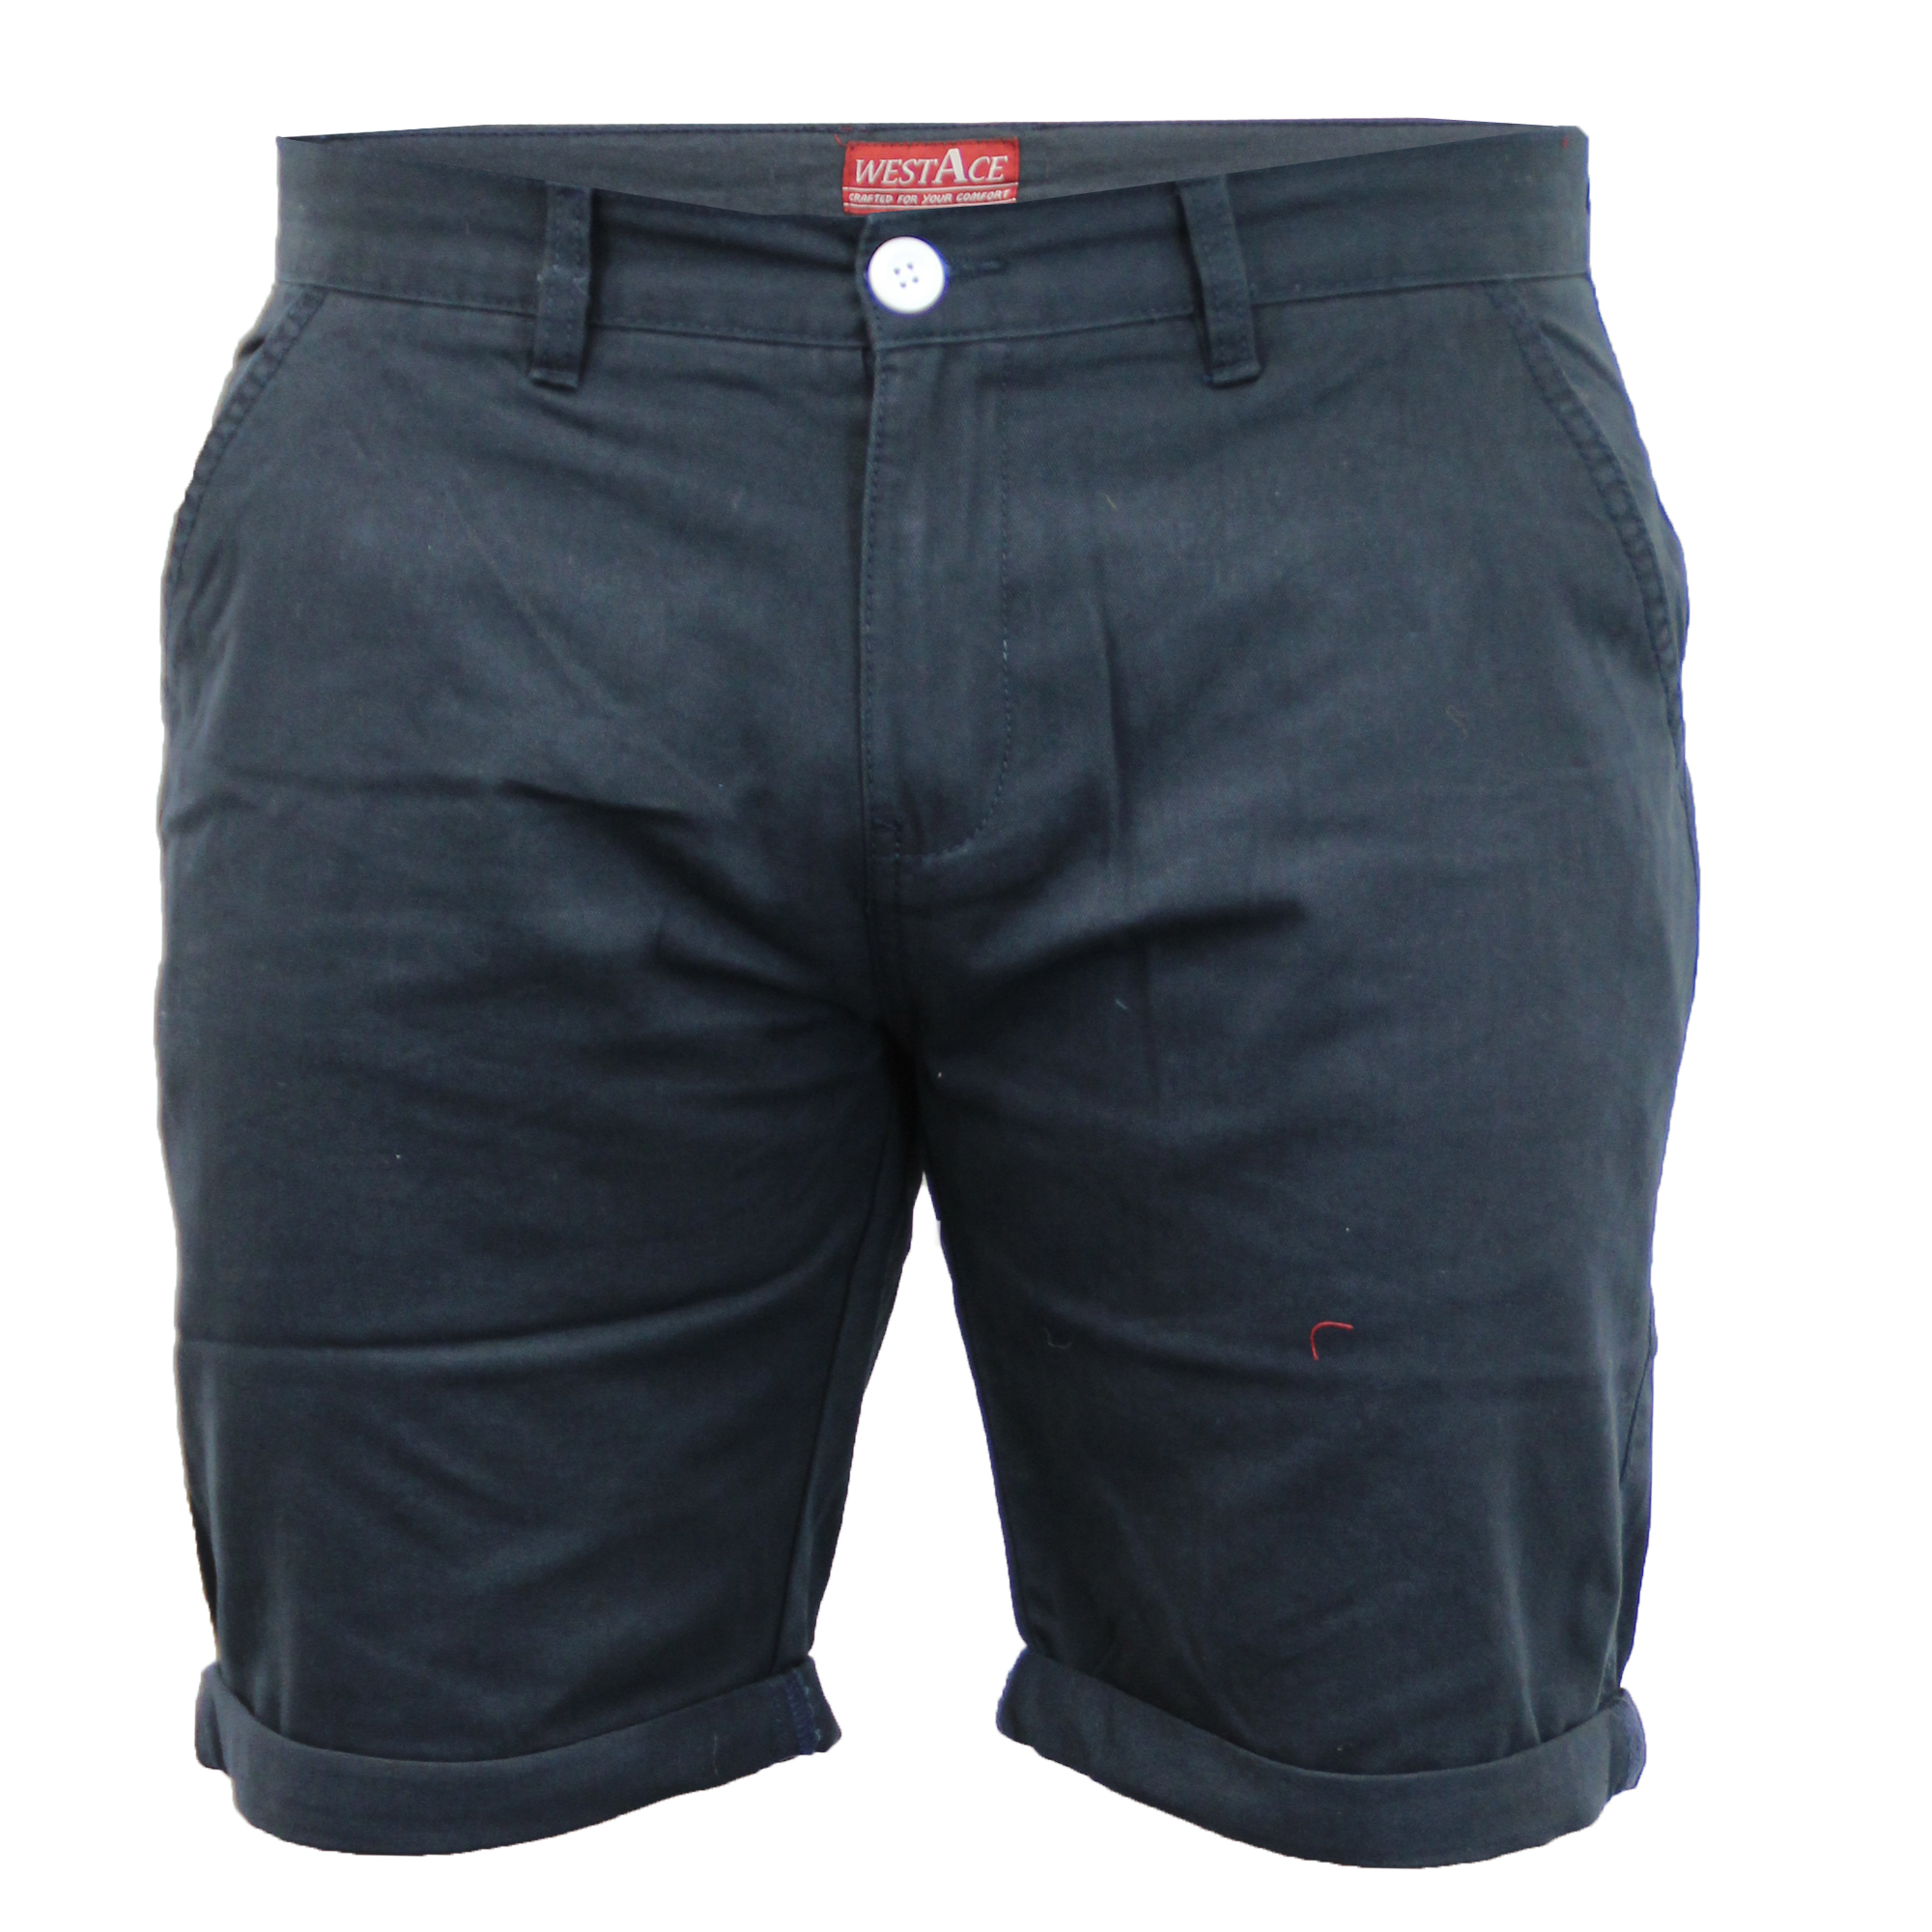 Mens-Chino-Shorts-Threadbare-Pants-Westace-Stallion-Knee-Length-Roll-Up-Summer thumbnail 28